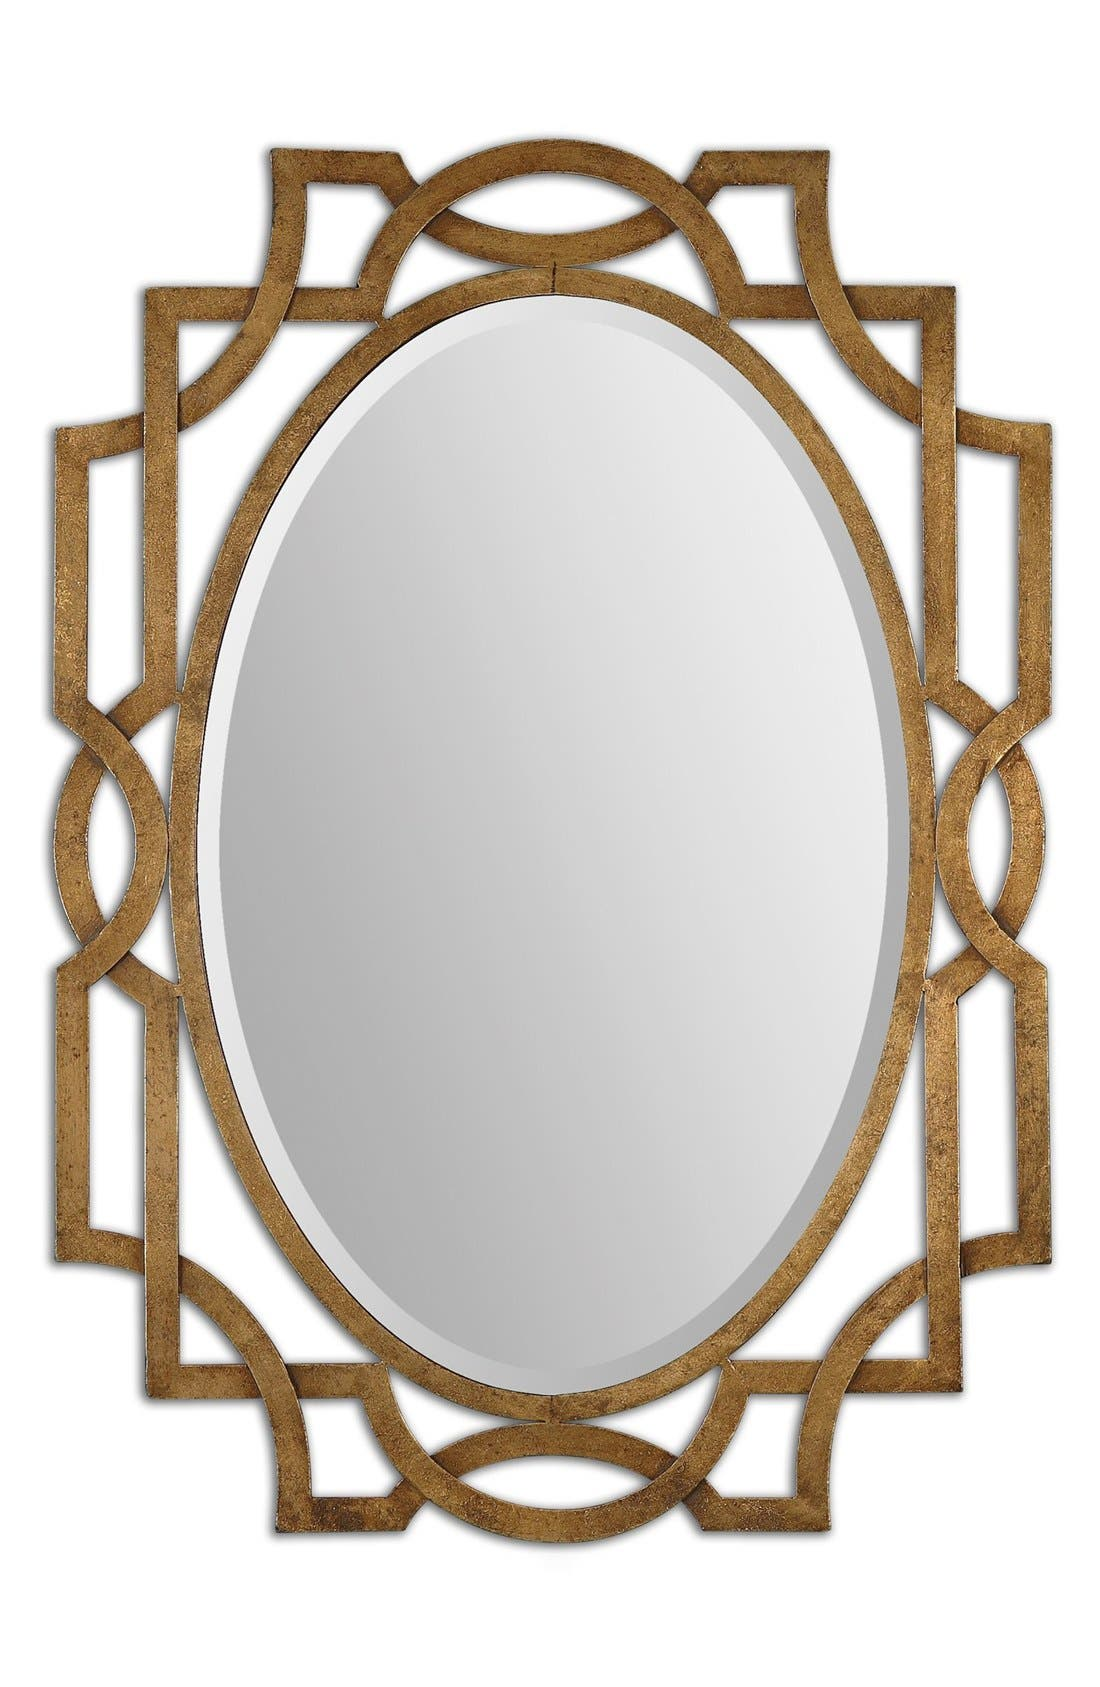 'Margutta' Antiqued Goldtone Oval Mirror,                             Main thumbnail 1, color,                             710